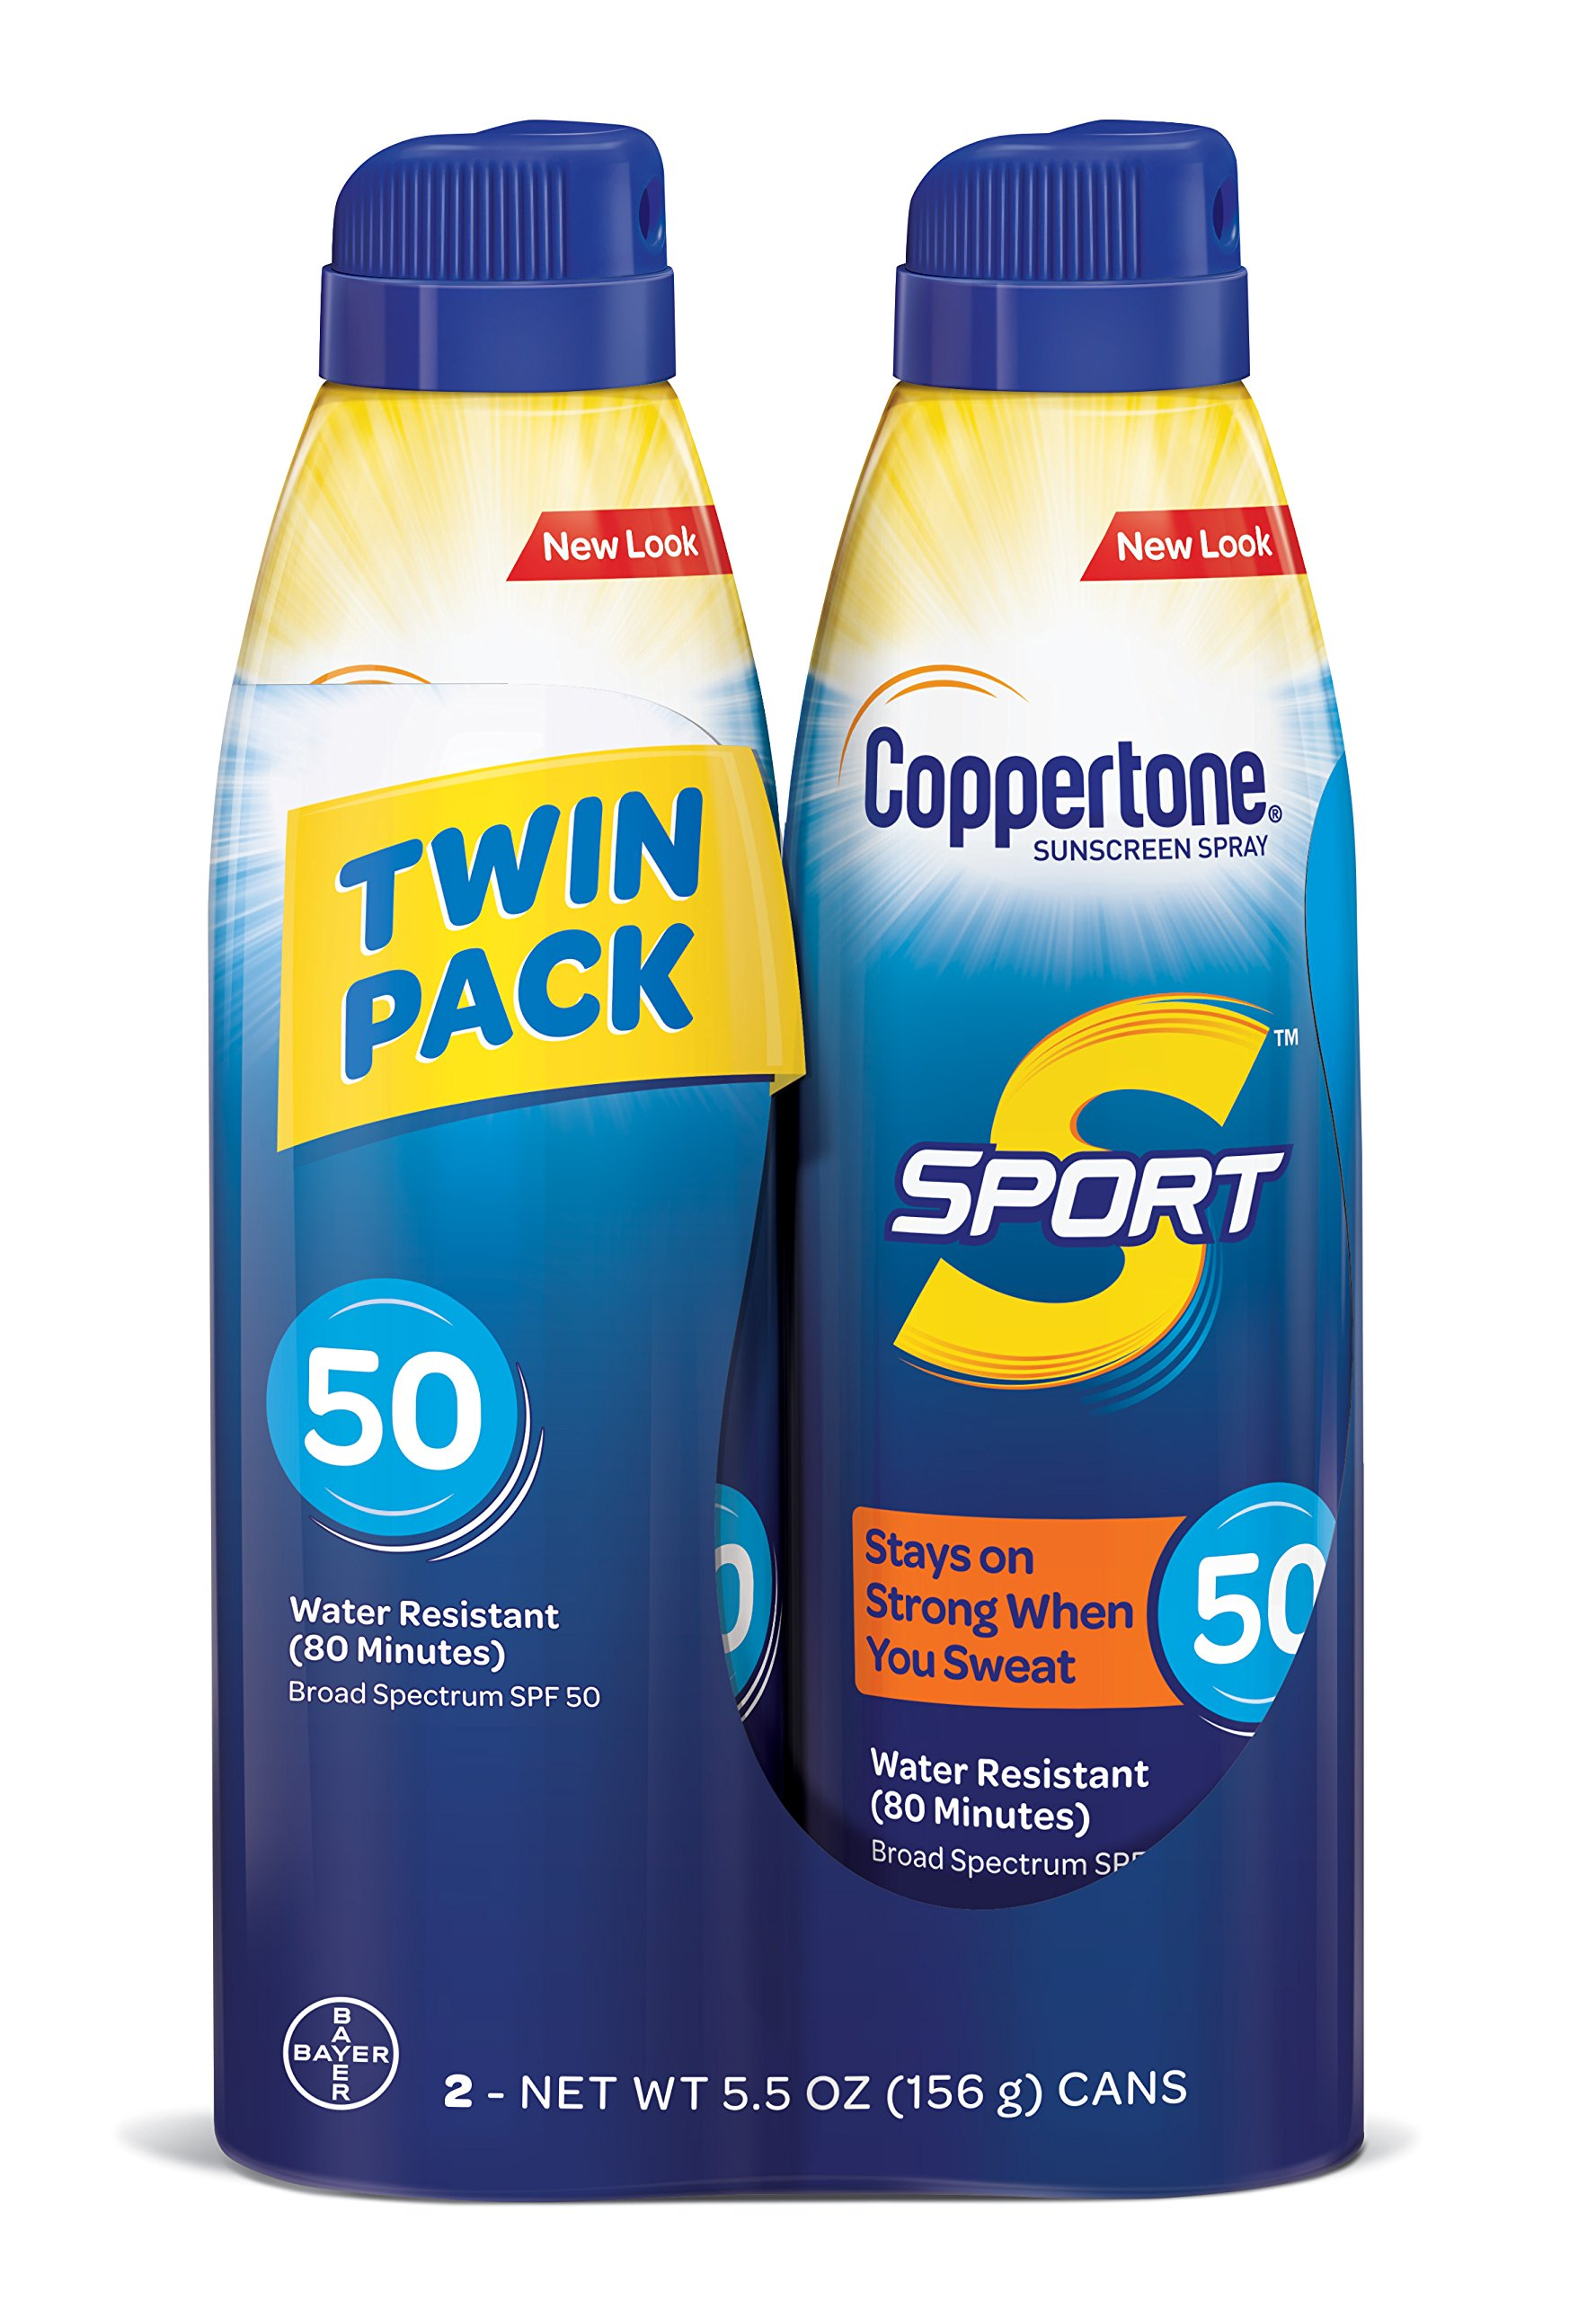 Coppertone SPORT Continuous Sunscreen Spray Broad Spectrum SPF 50 (5.5 Ounce per Bottle, Pack of 2) (Packaging may vary) by Coppertone